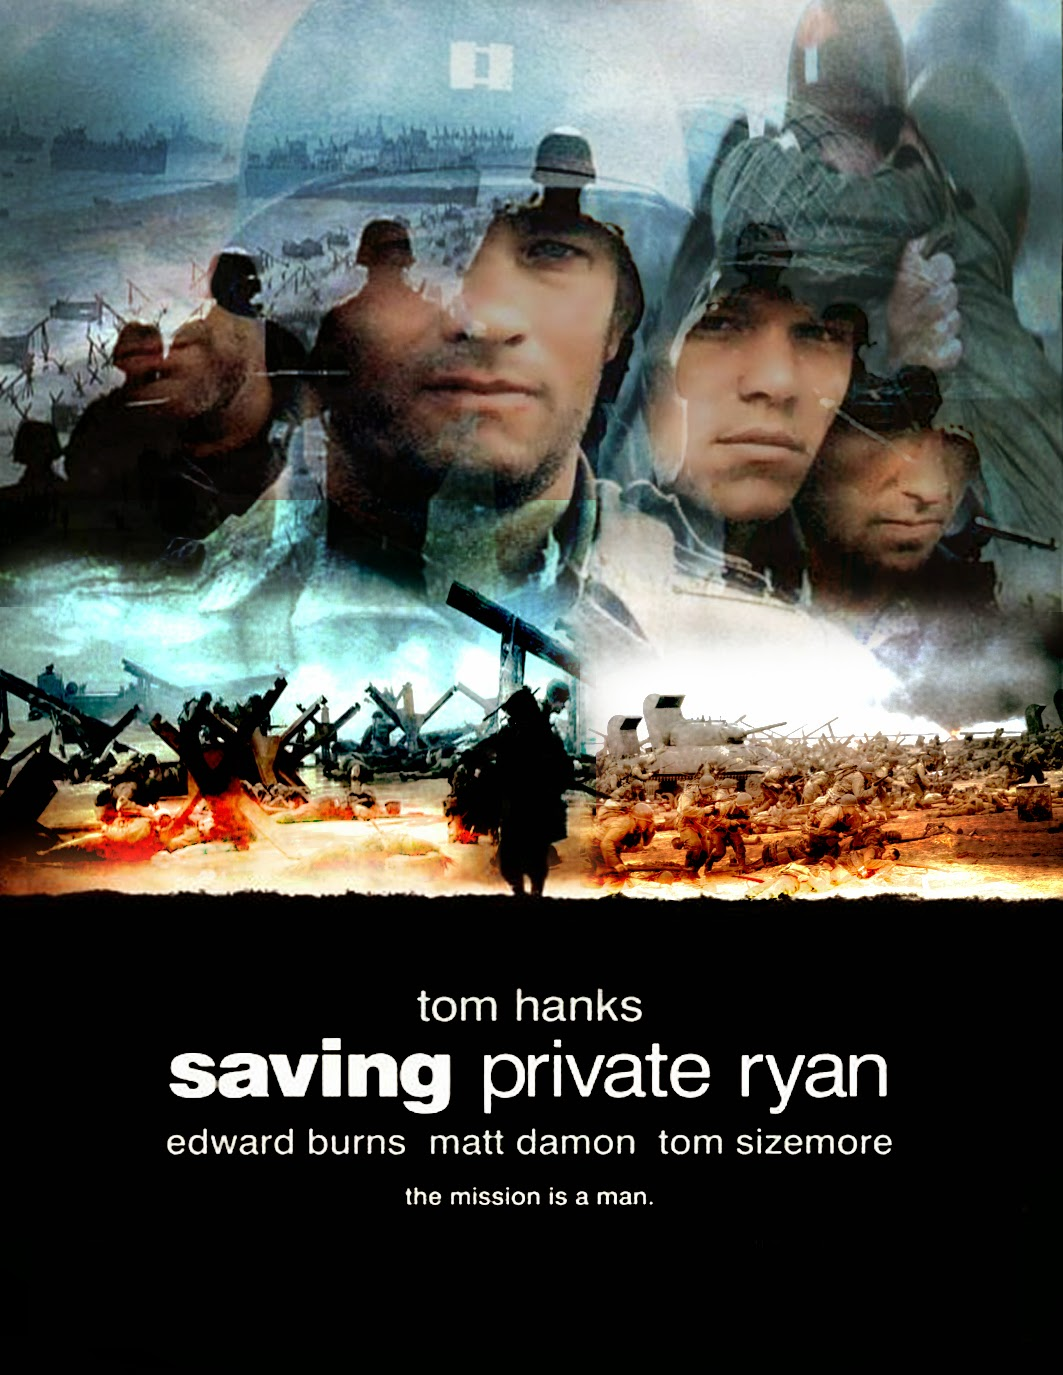 essay on saving private ryan template essay on saving private ryan